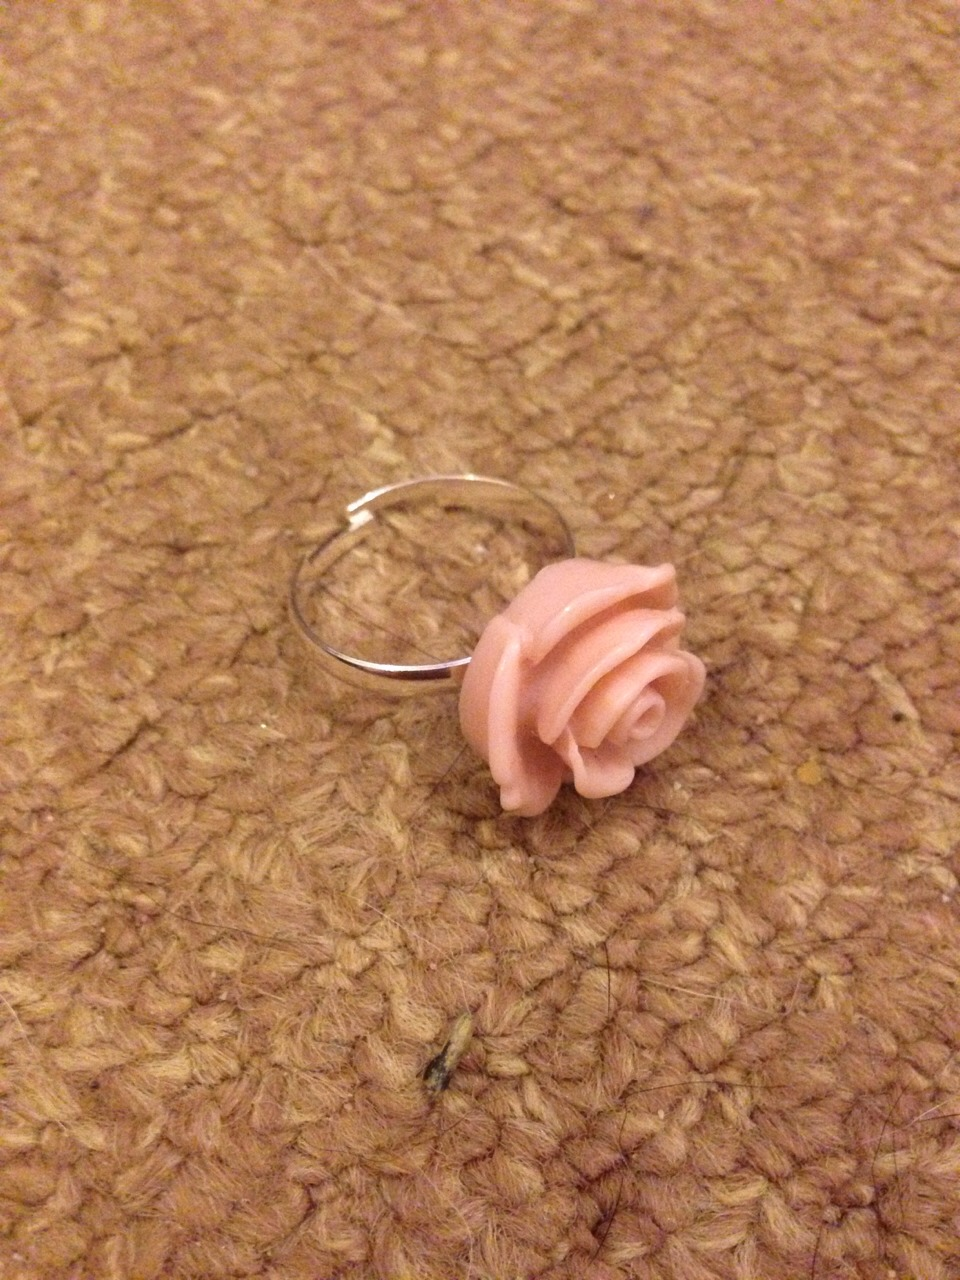 You need your ring (any costume jewellery ring you own) i'm using a beautiful pastel flower ring I got from a store in the UK